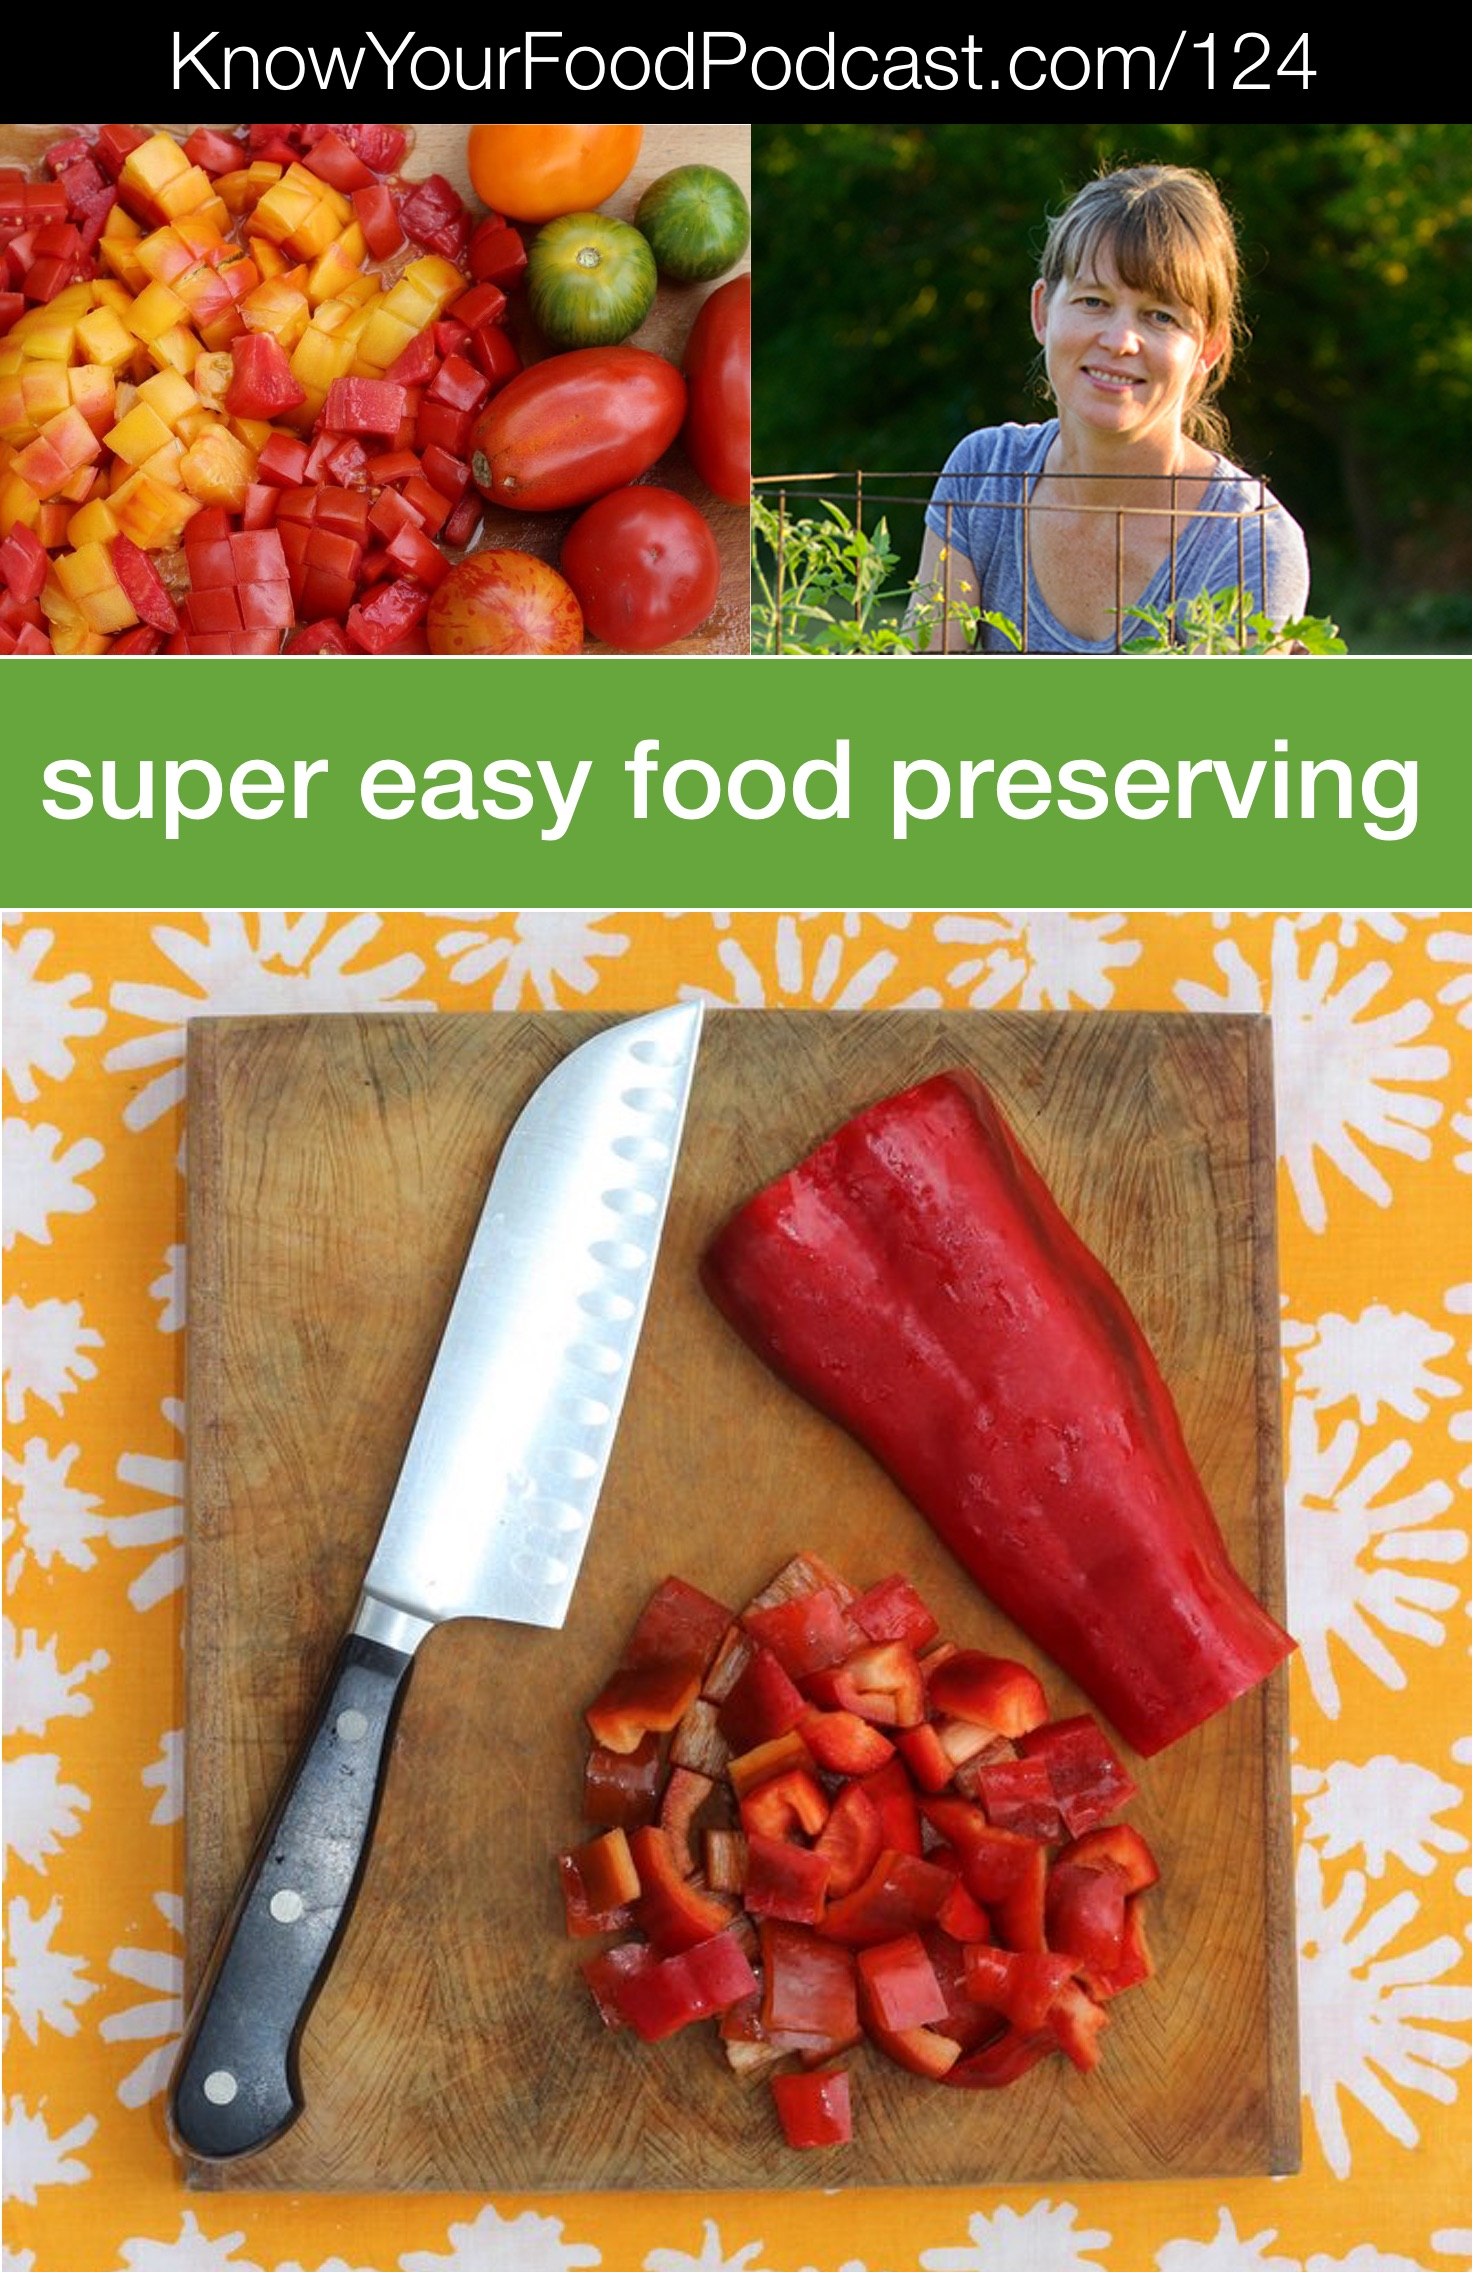 Super Easy Food Preserving | Preserving the seasonal bounty is surprisingly easy. No need to slave over a hot stove and a hissing canner (though you can if you want!). So says Megan, the Creative Vegetable Gardener, and I completely agree. Here's how to figure out what foods you should be preserving and how to do it super easily. | KnowYourFoodPodcast.com/124